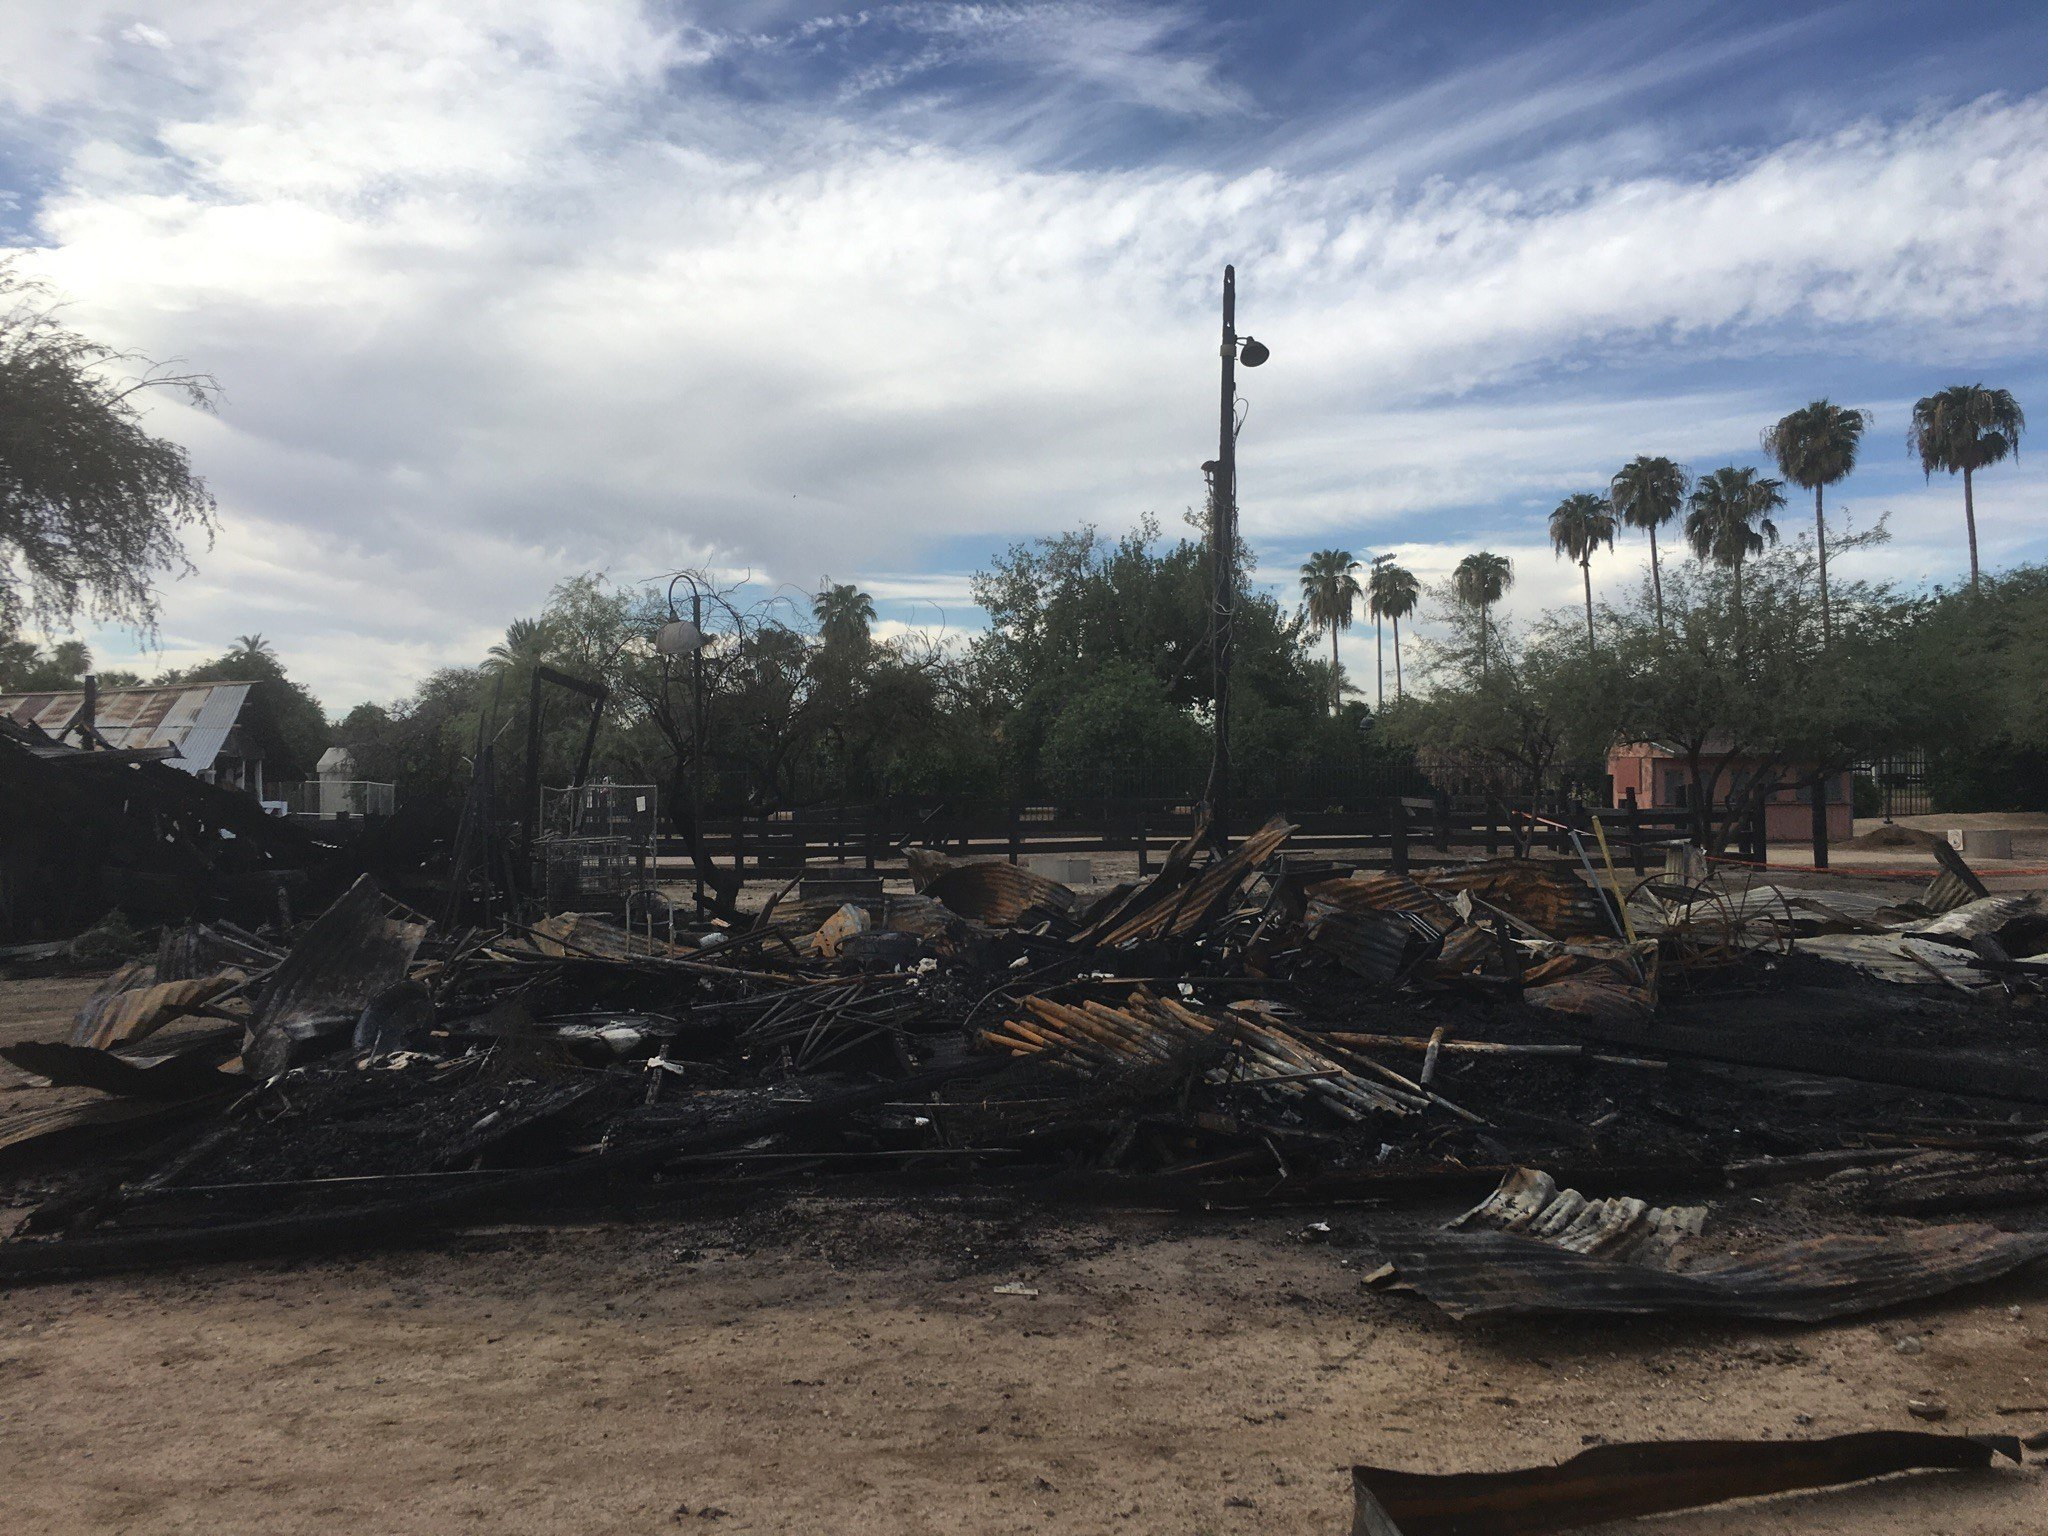 Glendale police said no one was hurt during the incidents and through the quick actions of the police and fire departments, the damage did not spread to other buildings in the surrounding areas. (Source: 3TV/CBS 5)